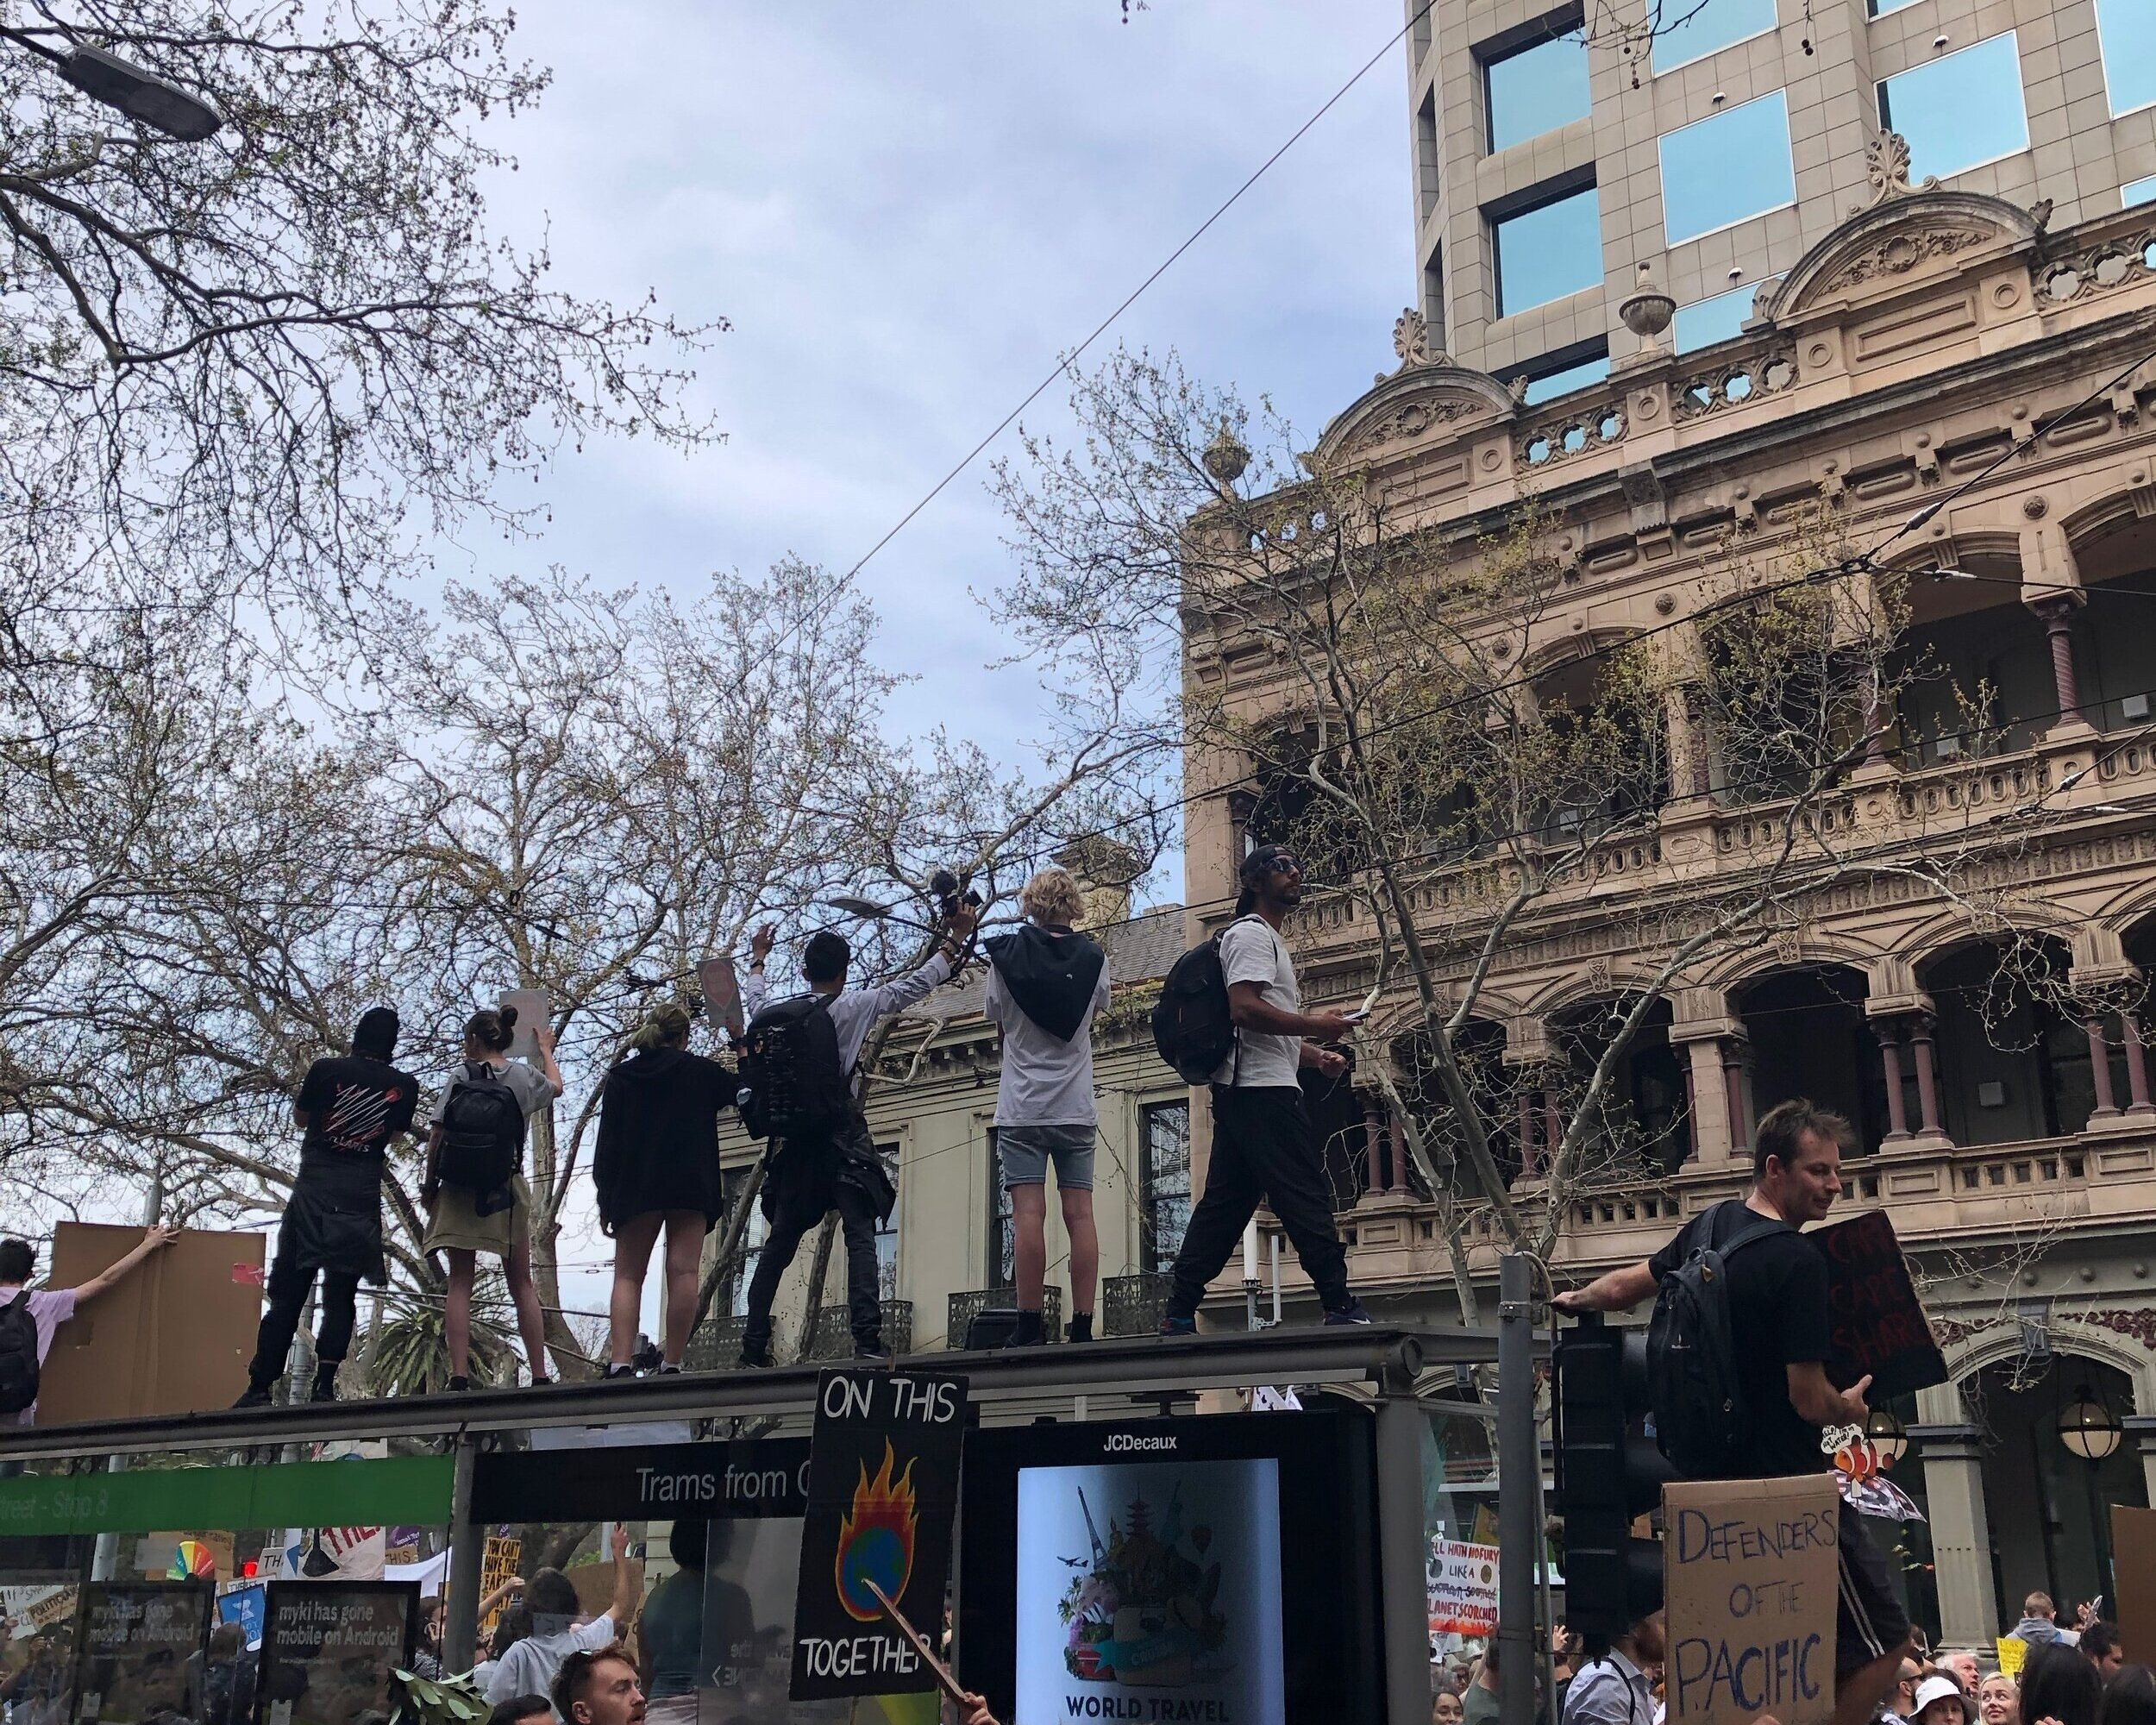 Young protestors atop tram stations. Photograph by Coral Huckstep